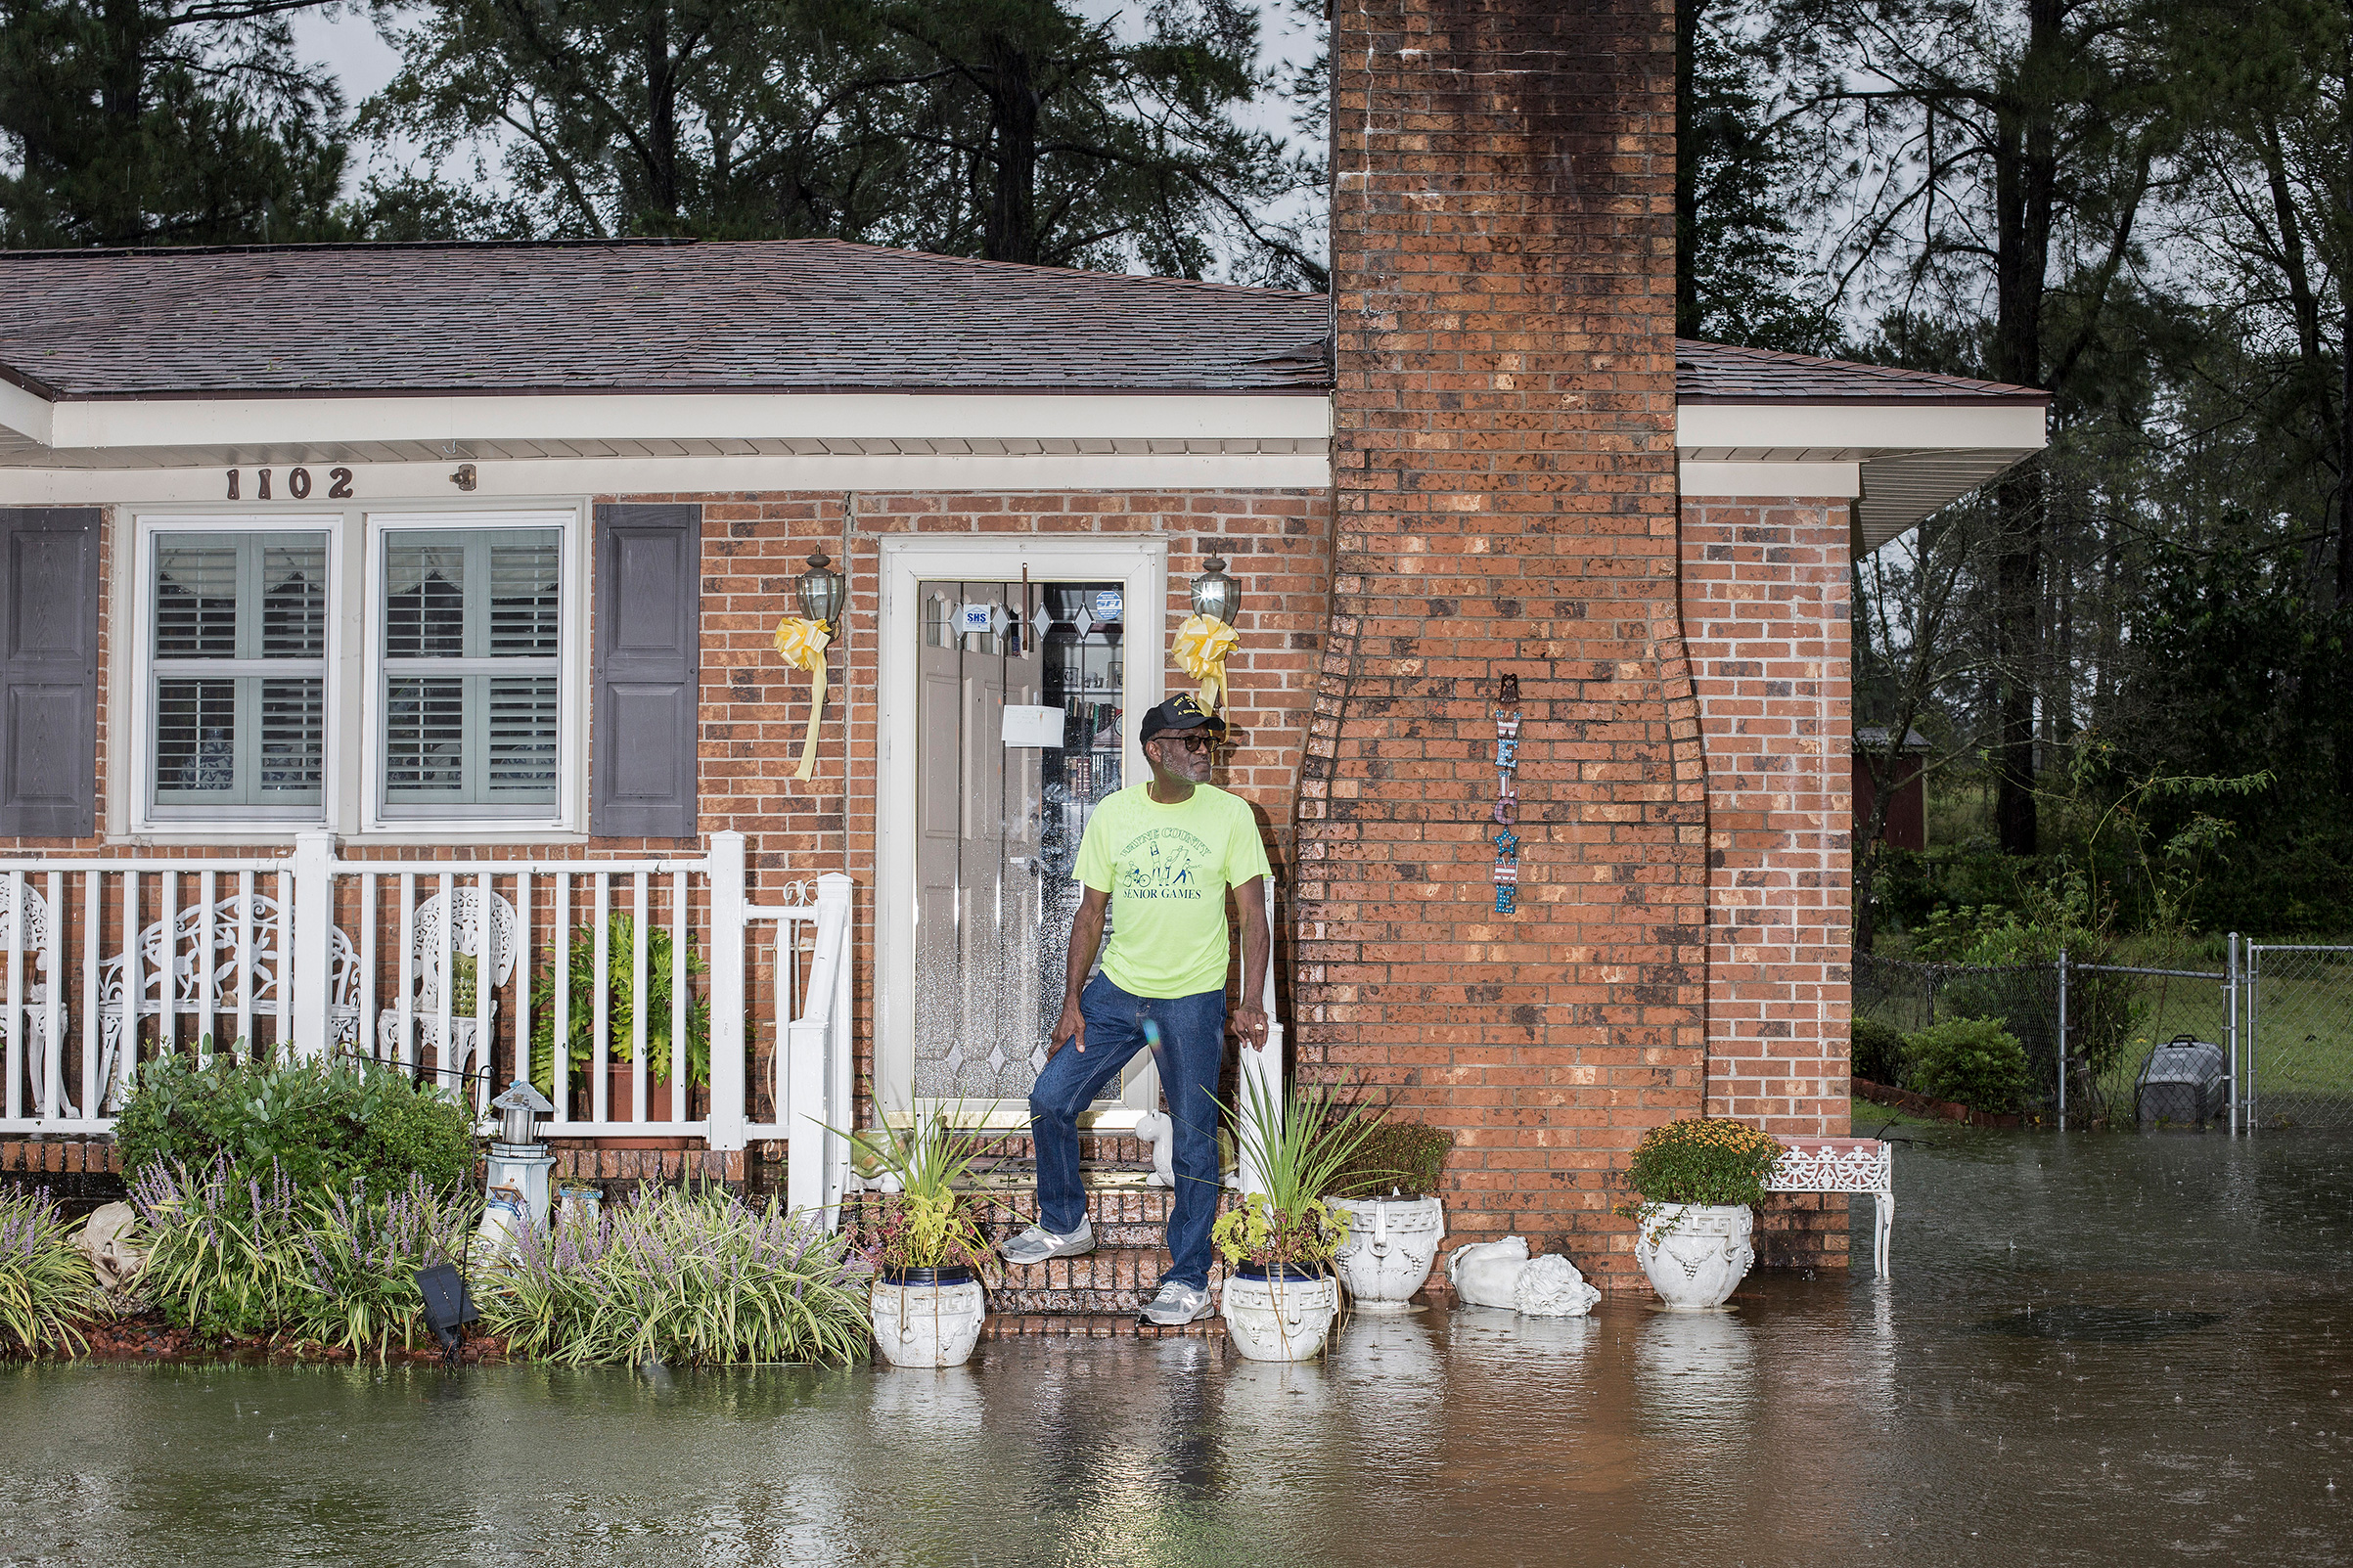 Coy Coley in front of his home in Goldsboro, N.C., after his neighborhood was flooded due to rainfall from Hurricane Florence on Sept. 15.